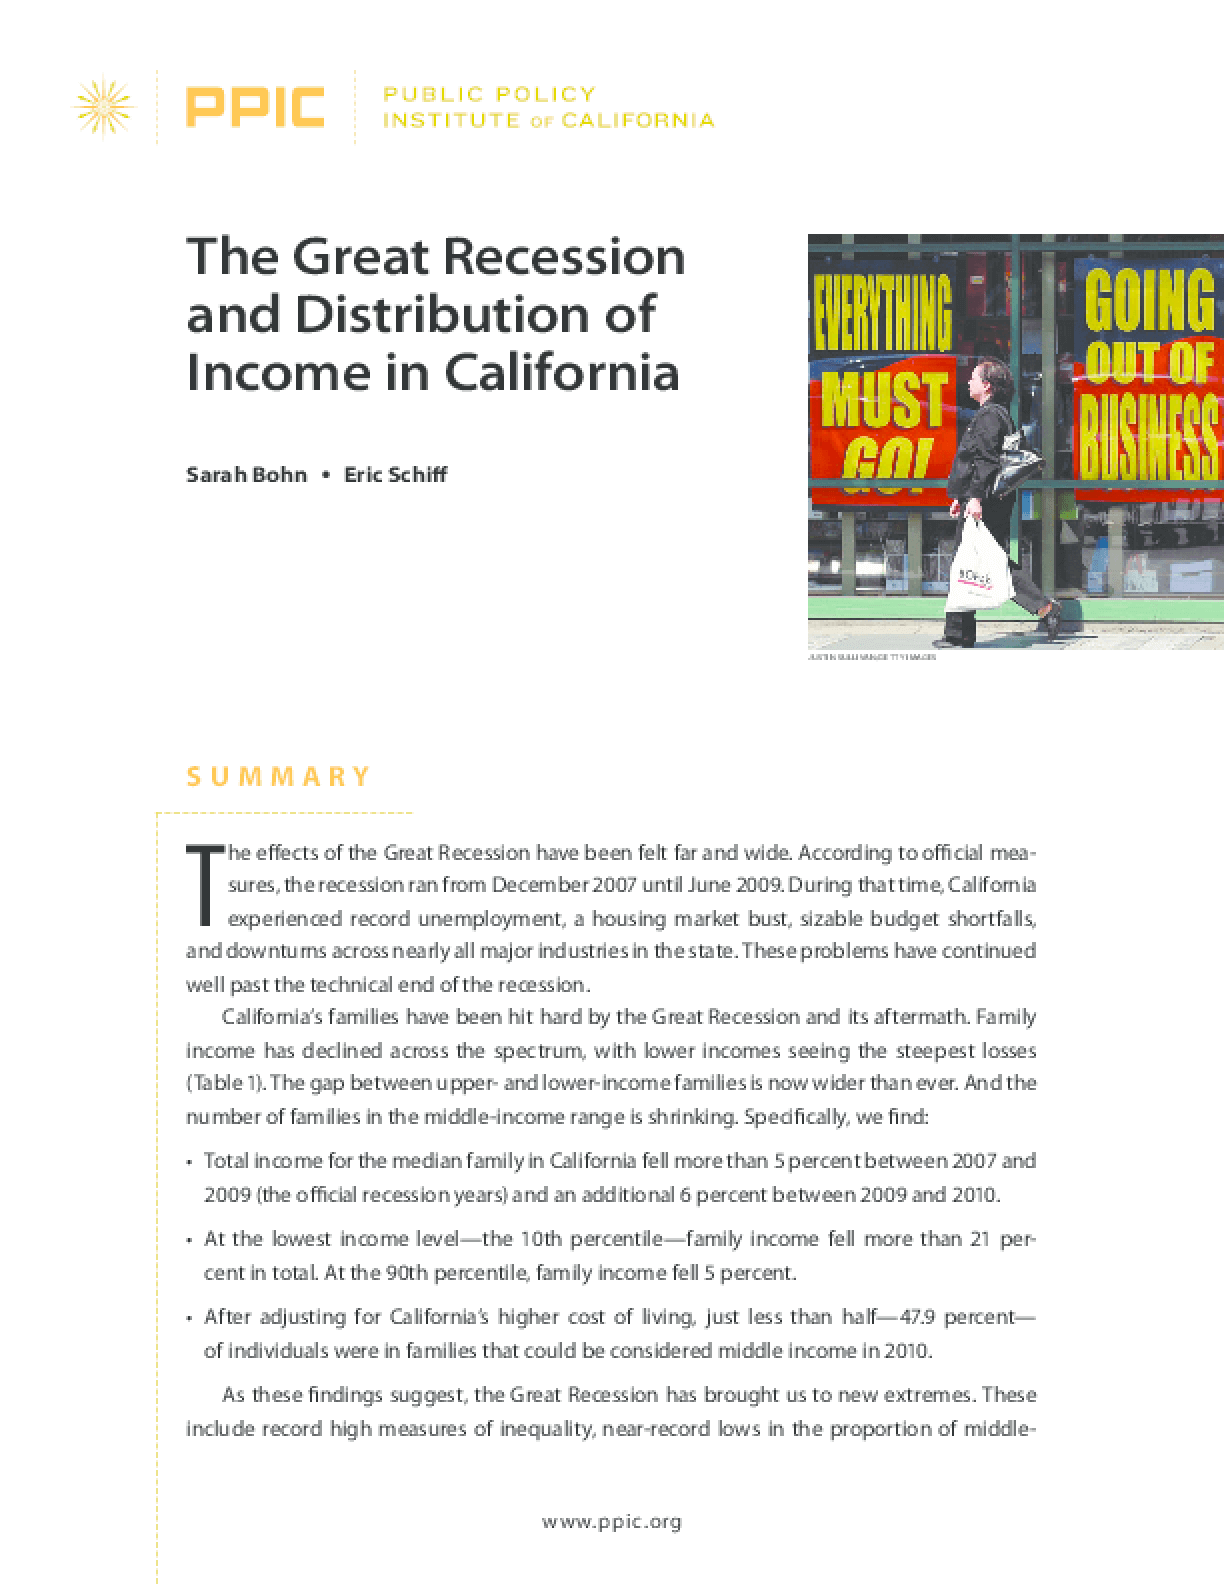 The Great Recession and Distribution of Income in California